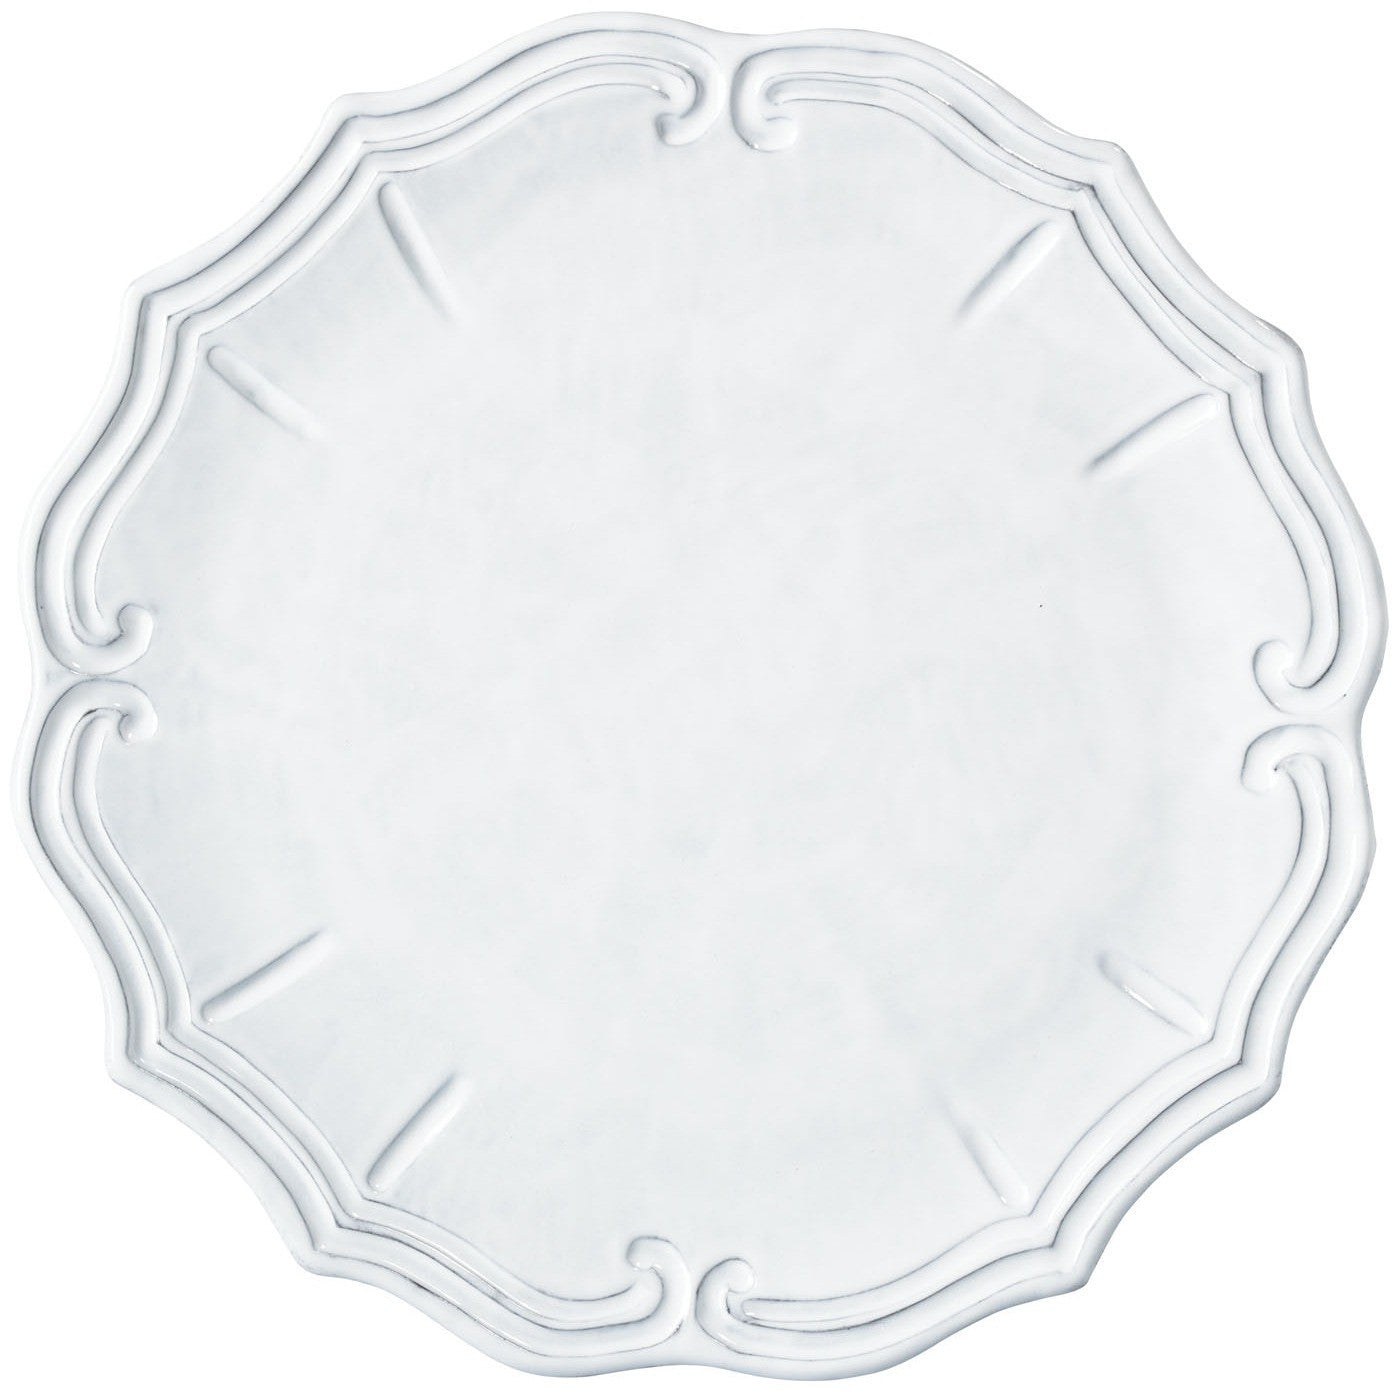 Incanto Baroque White Service Plate/Charger - Set of 4 , tableware - Vietri, Pezzo Bello  - 1